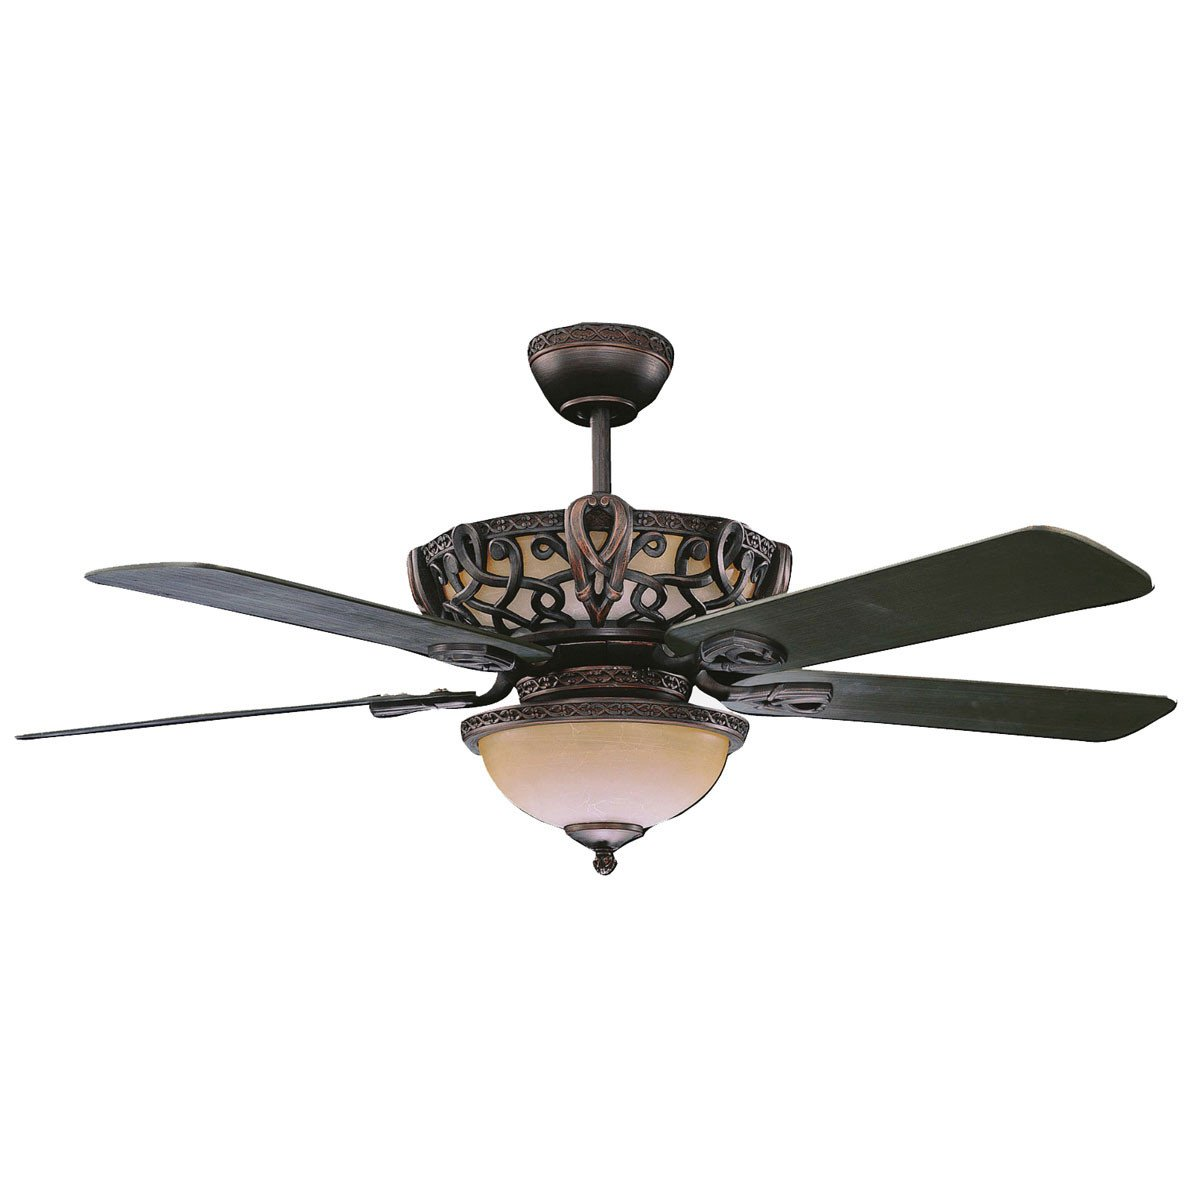 "Concord Fans 52"" Aracruz Oil Rubbed Bronze Ceiling Fan, Up & Downlights + Remote"